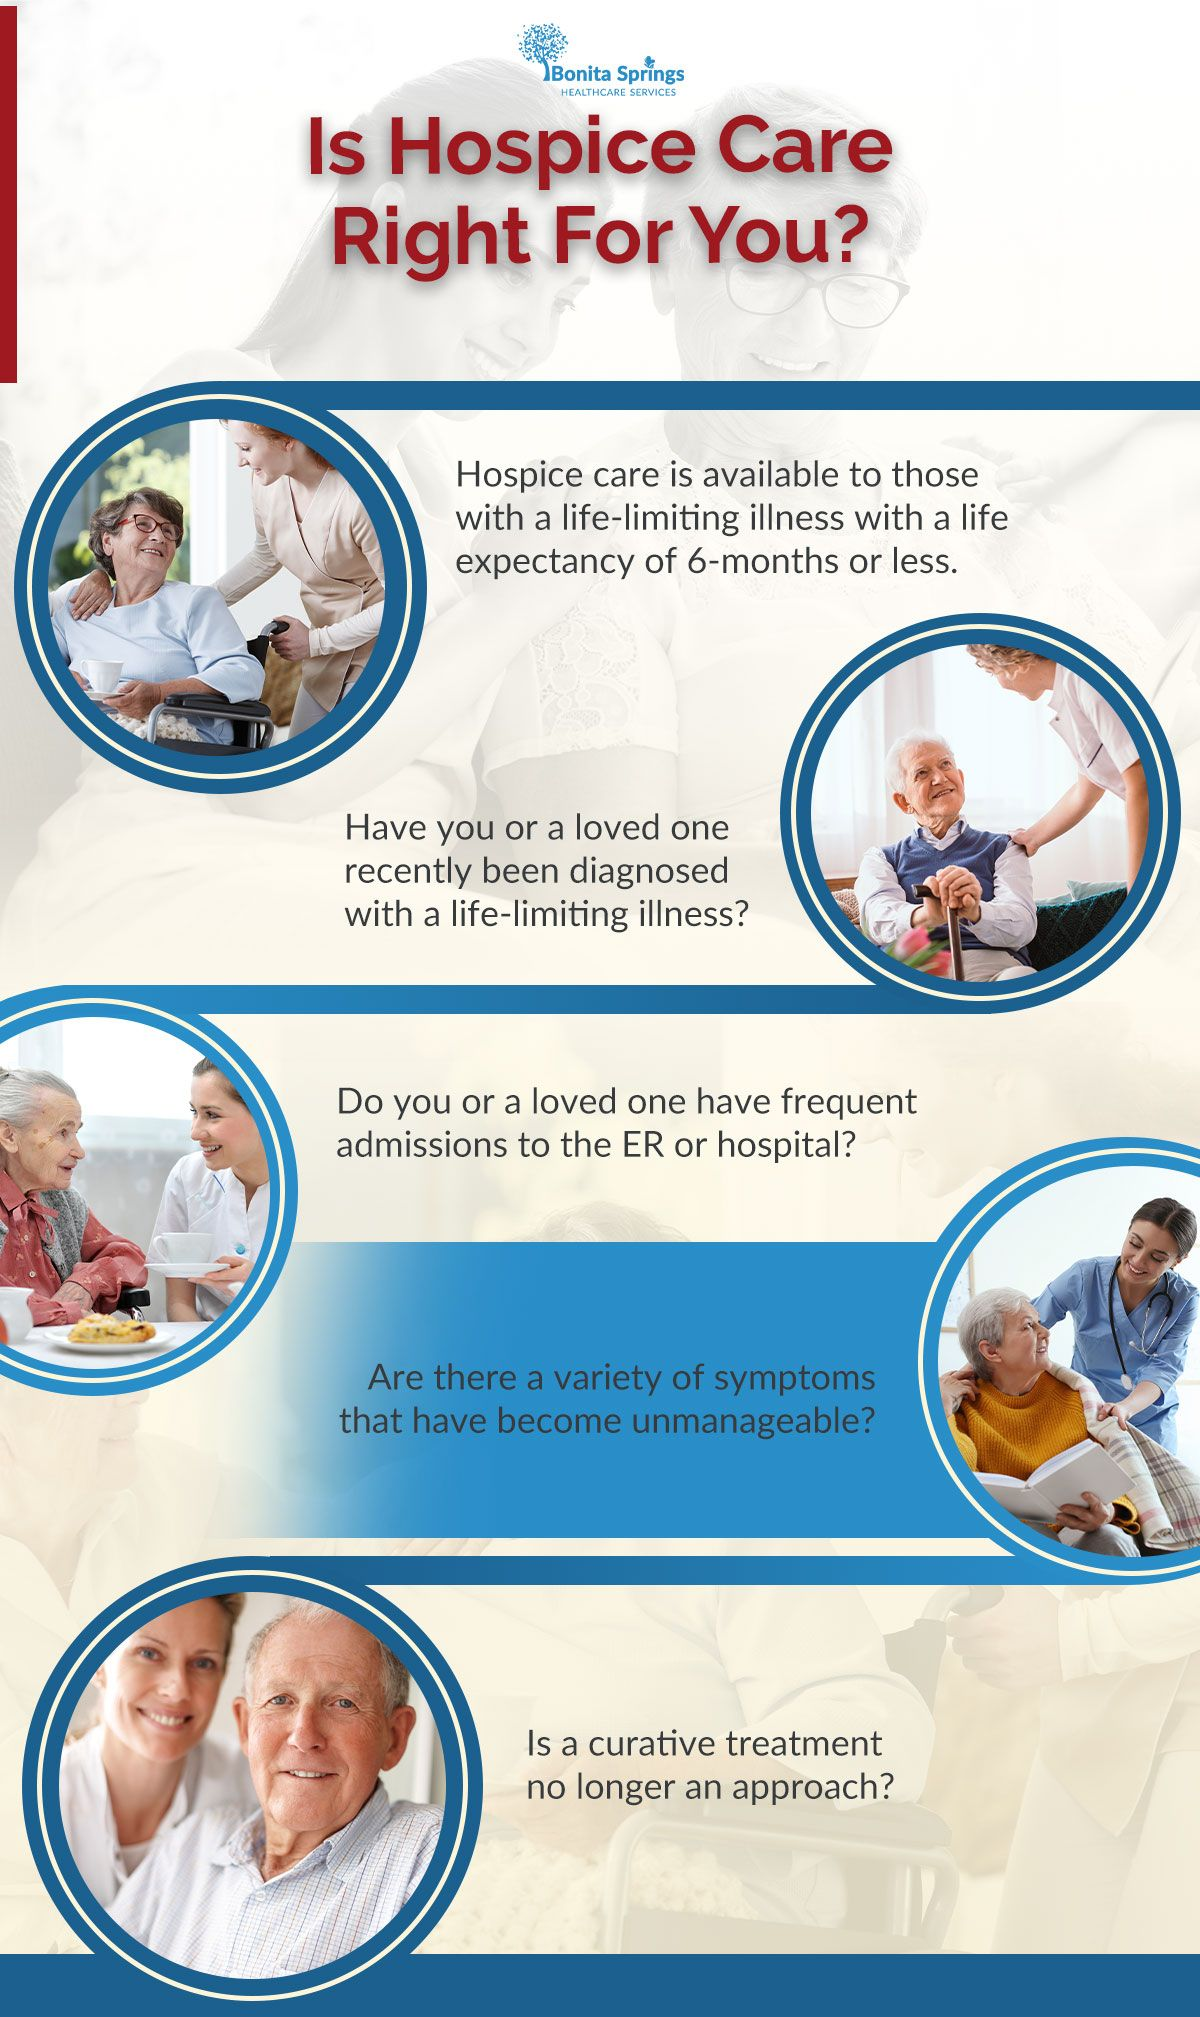 Is Hospice Care Right For You Infographic.jpg